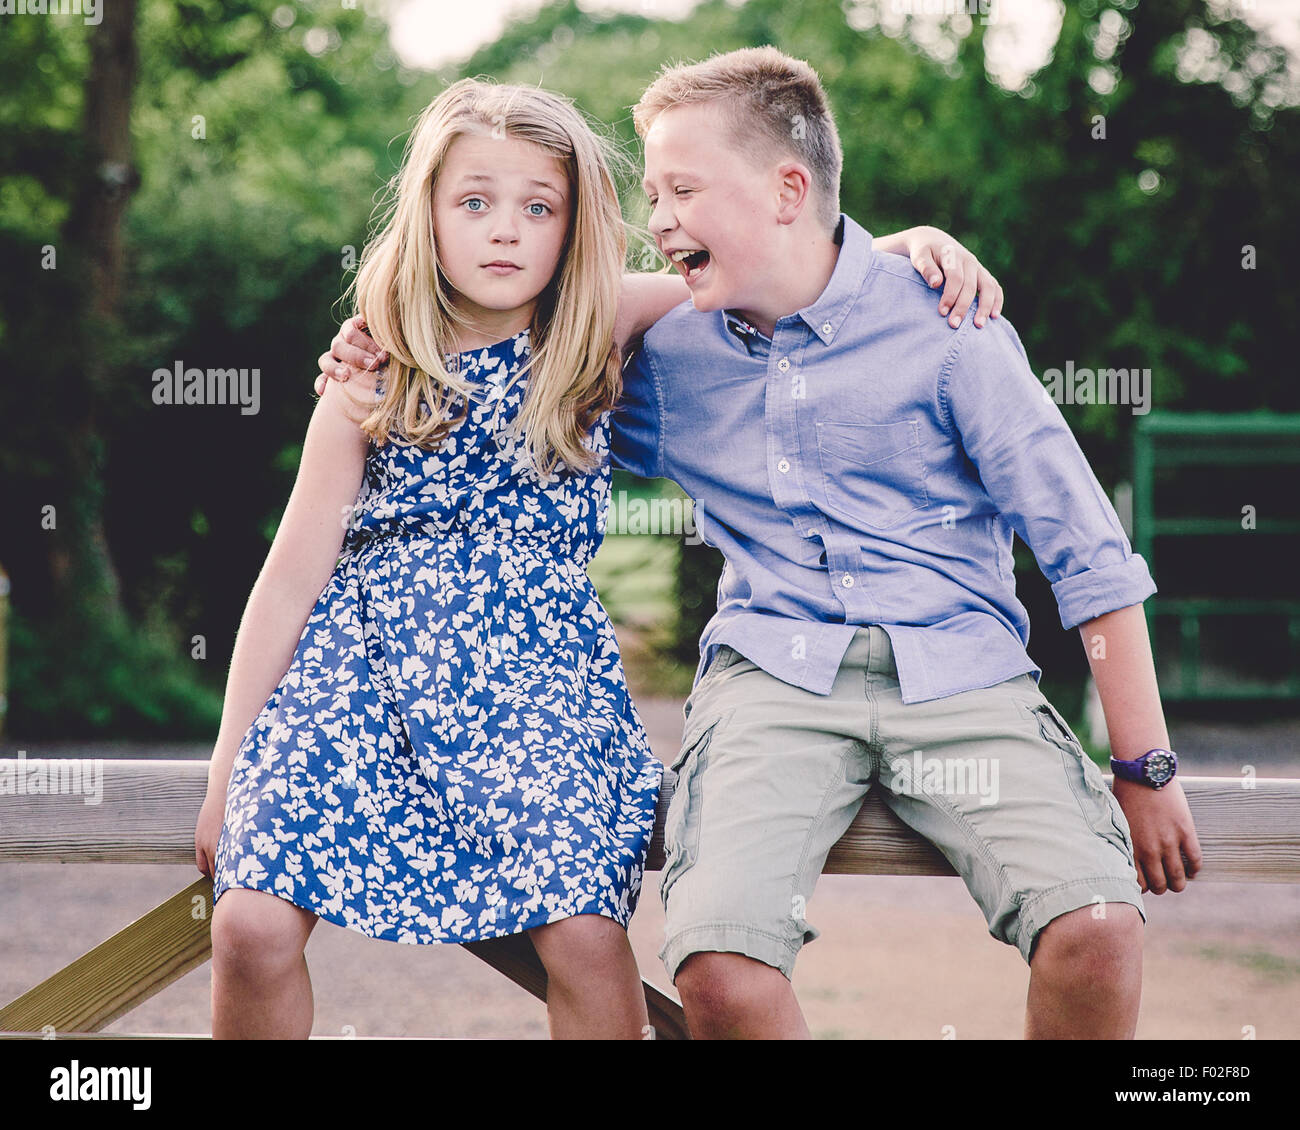 Boy and girl sitting on wooden gate with their arms around each other - Stock Image